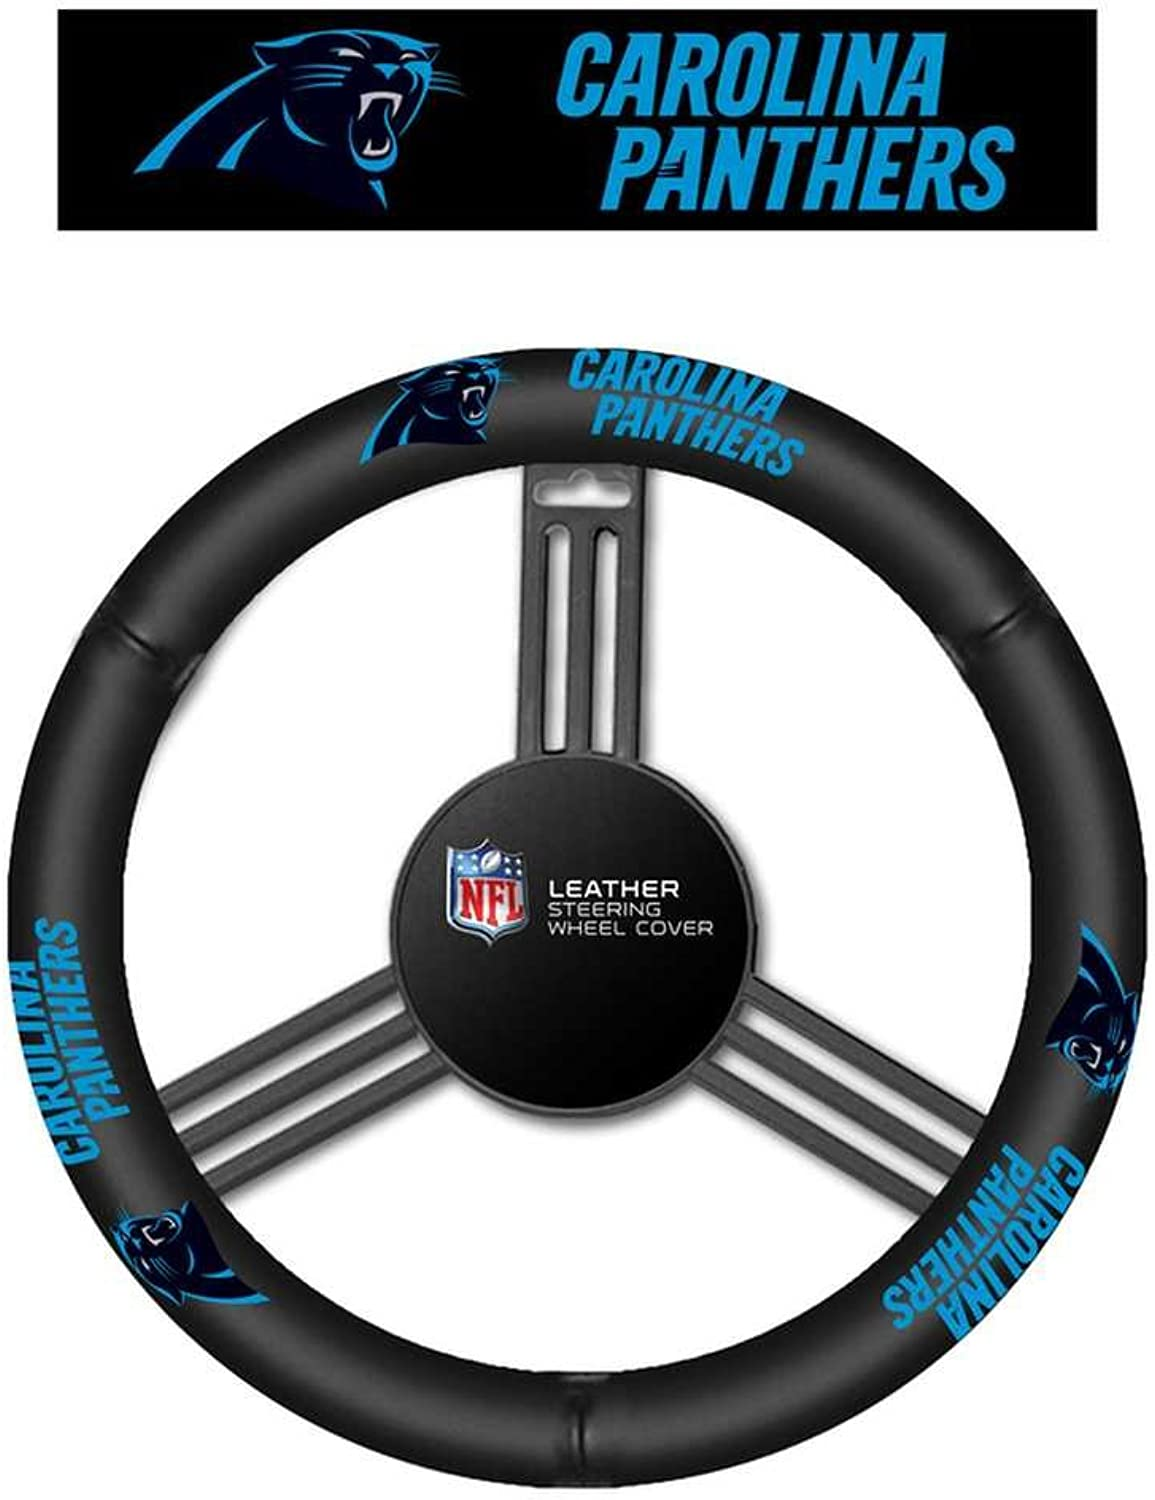 NFL Carolina Panthers No Leather Steering Wheel Coverleather Steering Wheel Cover, Black, One Size